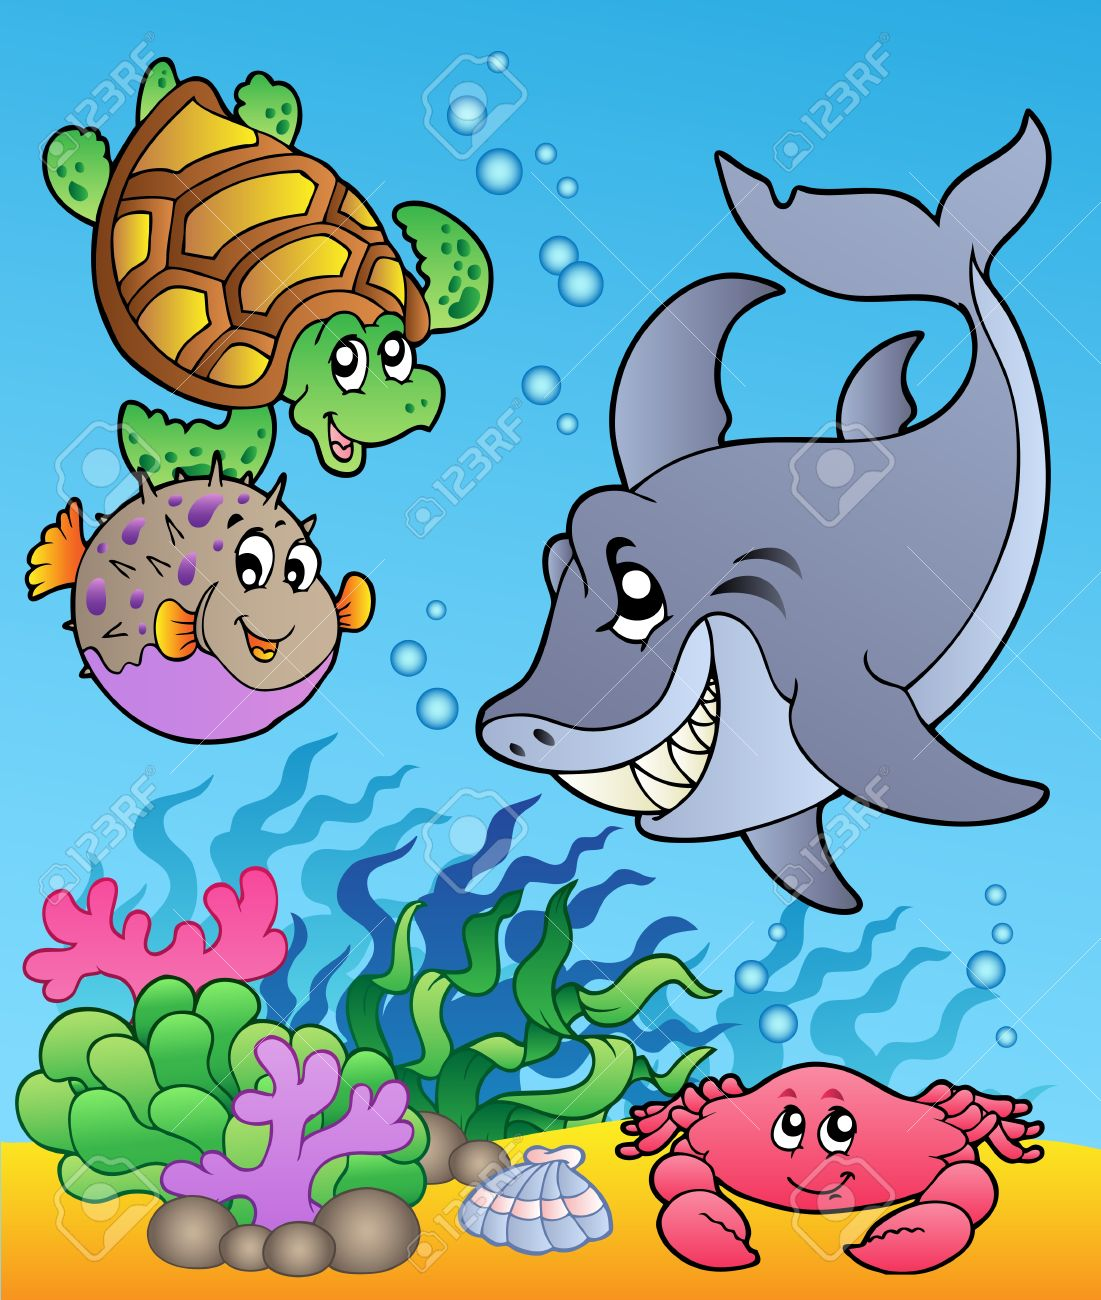 underwater animals and fishes 1 illustration royalty free